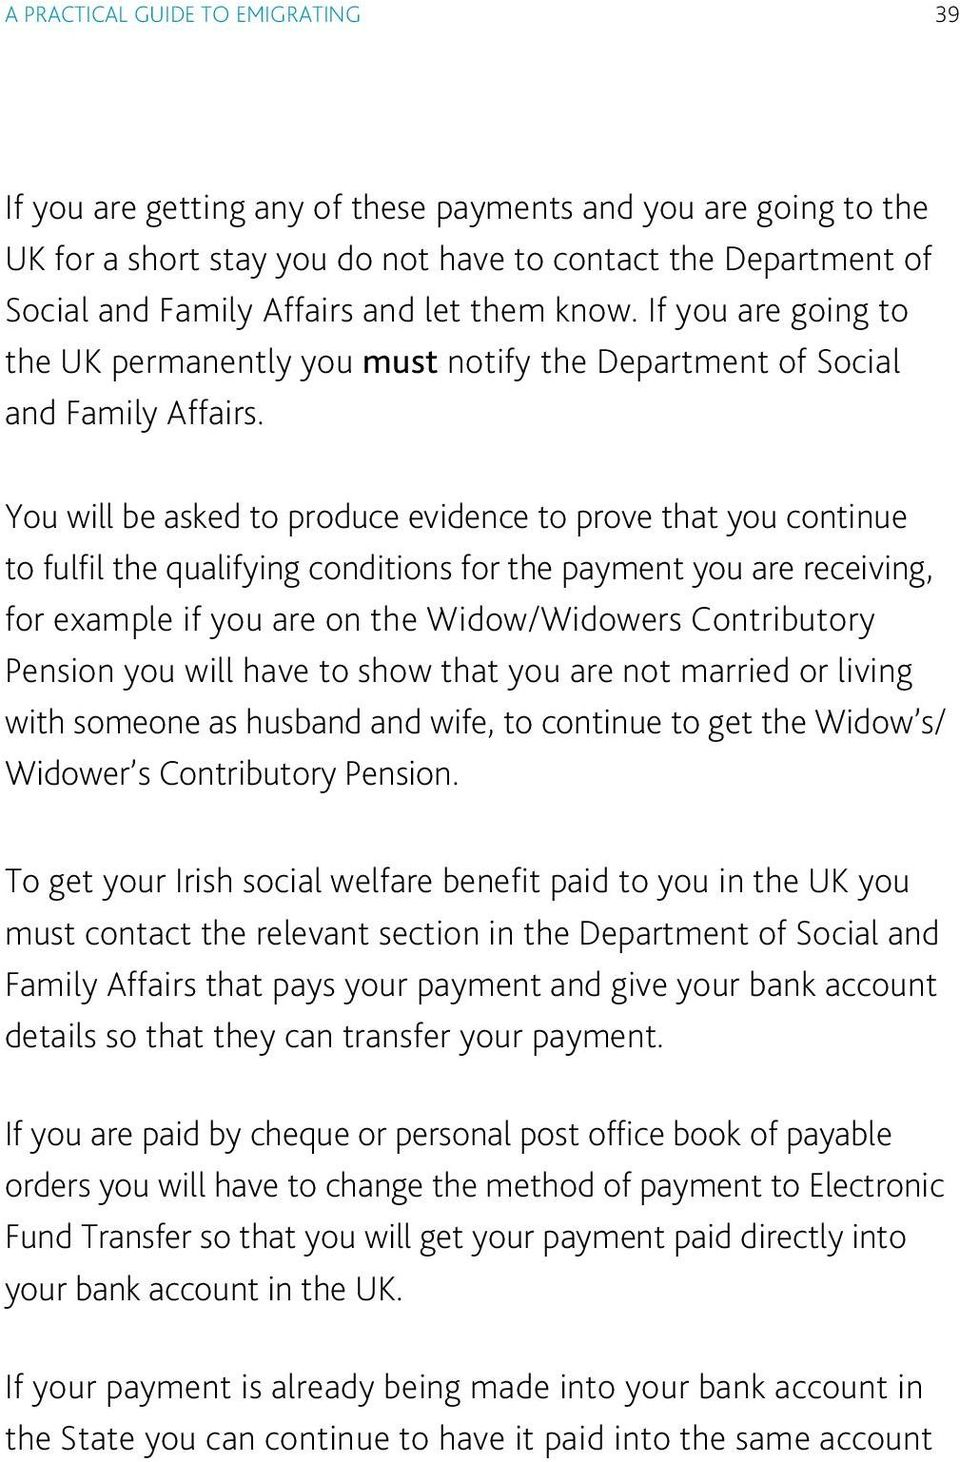 You will be asked to produce evidence to prove that you continue to fulfil the qualifying conditions for the payment you are receiving, for example if you are on the Widow/Widowers Contributory